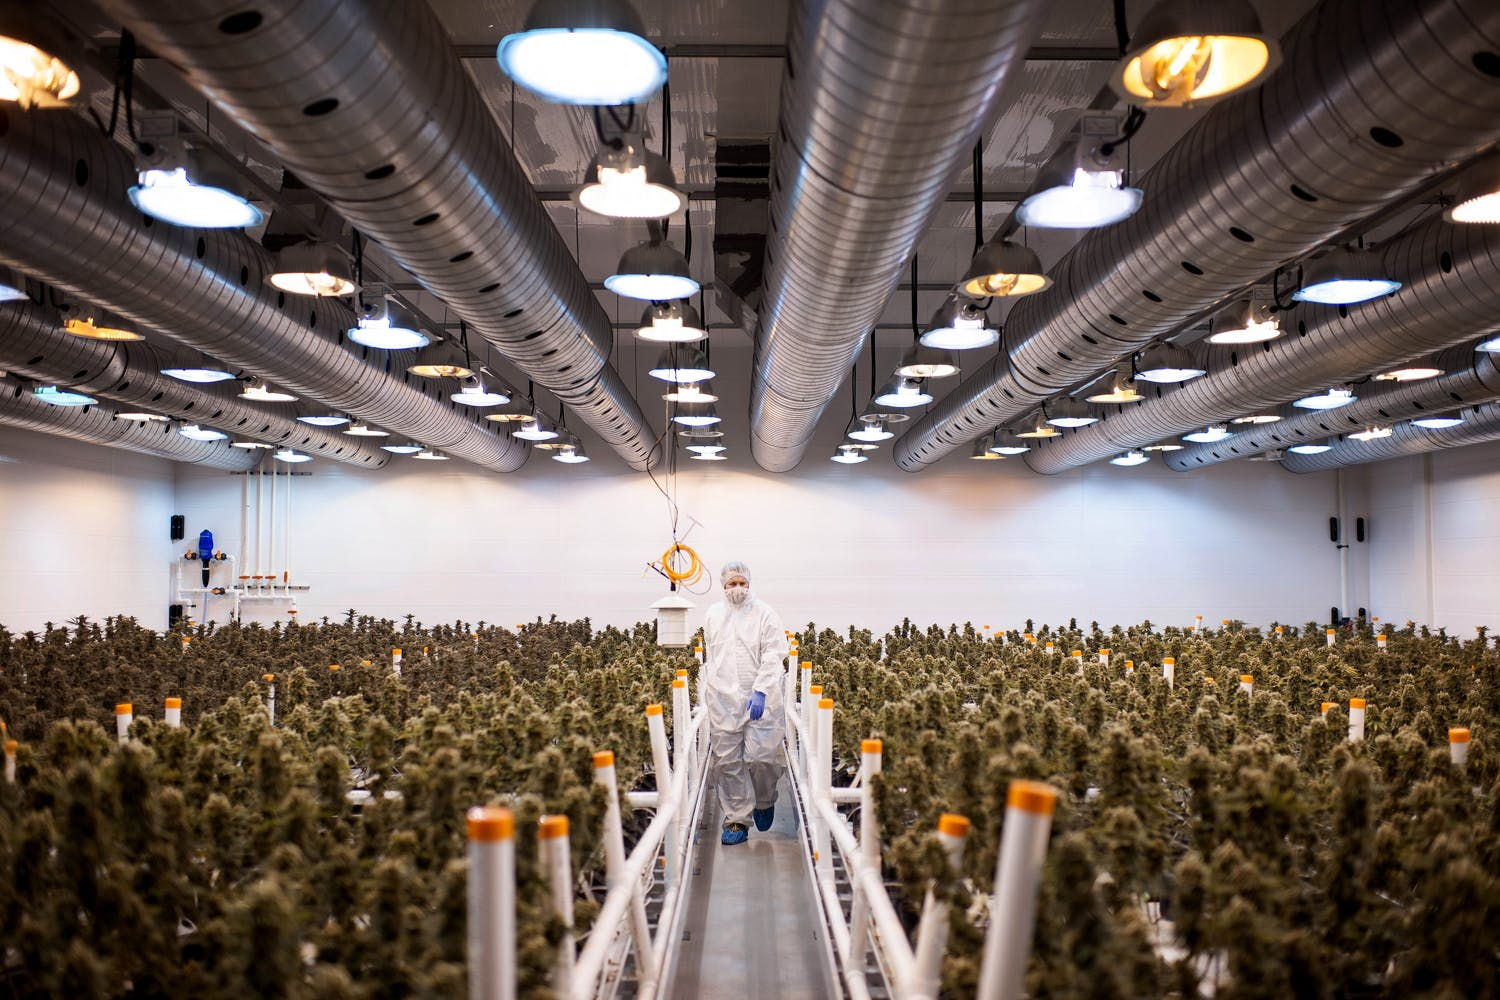 3 Best Marijuana Stocks to Invest in Right Now 3 of 4 The US Military is waving cannabis use and letting medical marijuana patients serve